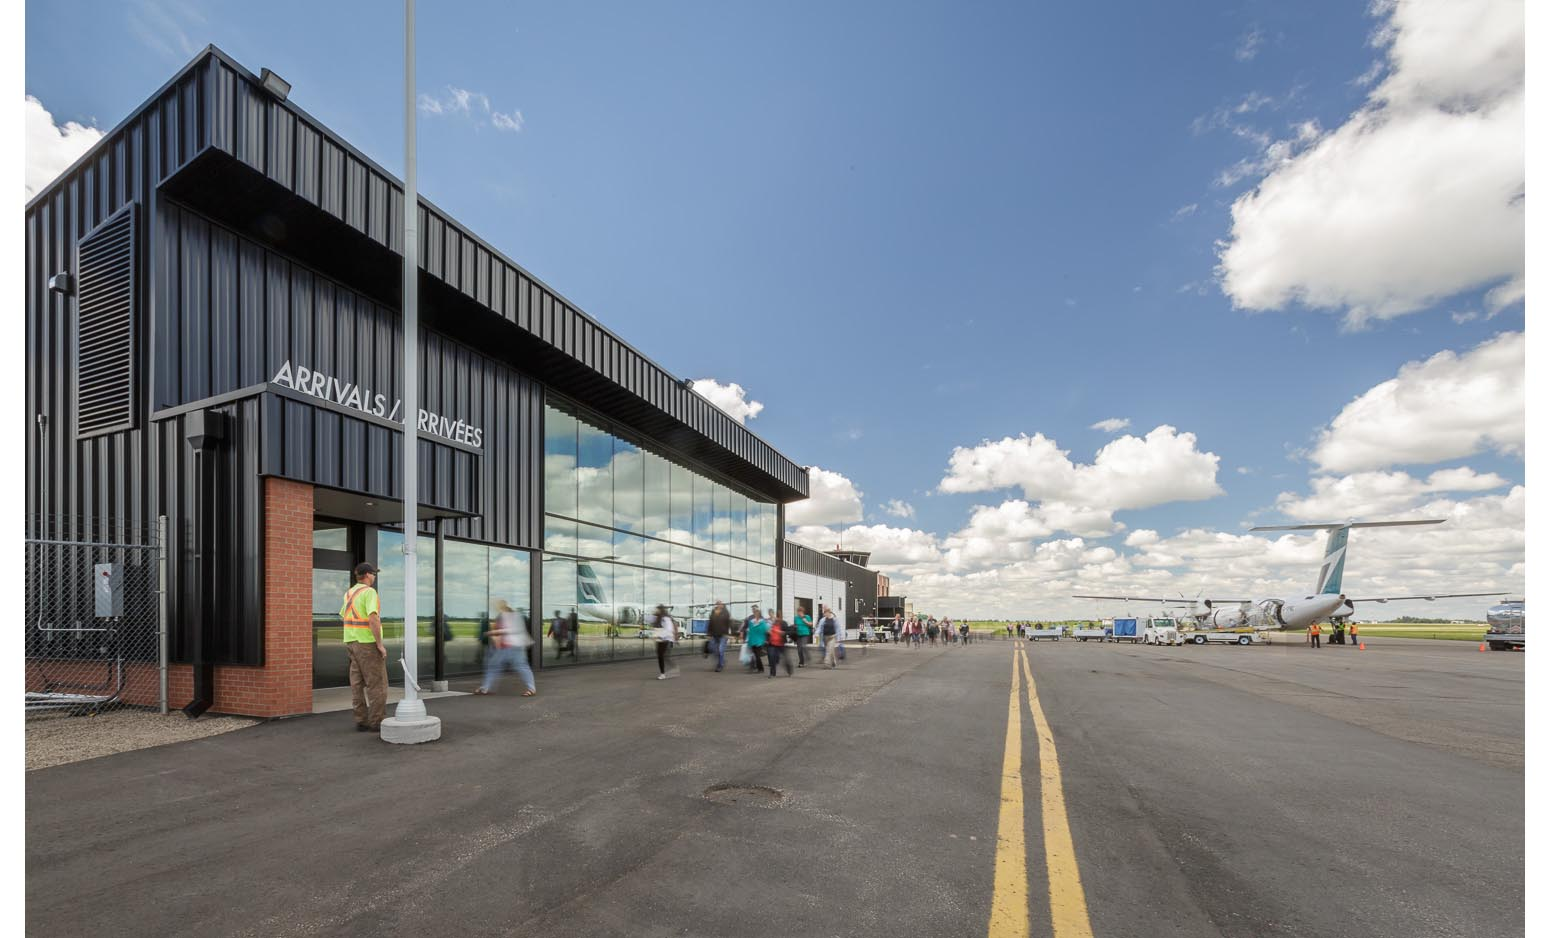 Brandon Municipal Airport, exterior photo of arrivals hall with passengers disembarking a plane / Photo:  Lindsay Reid